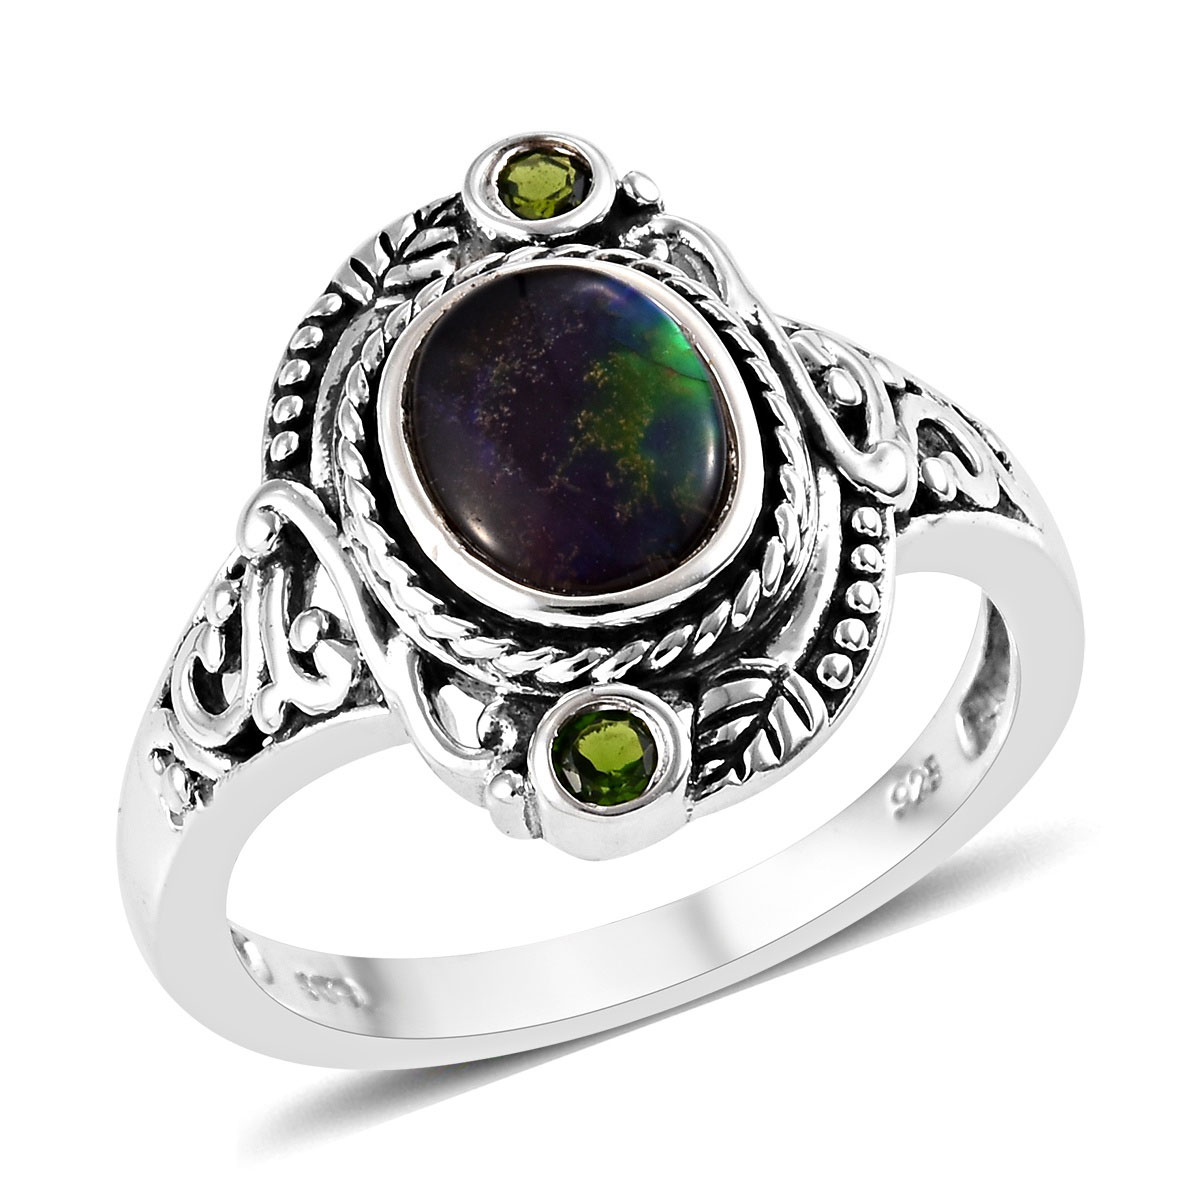 Canadian Ammolite, Russian Diopside Ring in Sterling Silver (Size 9.0) 1.66 ctw